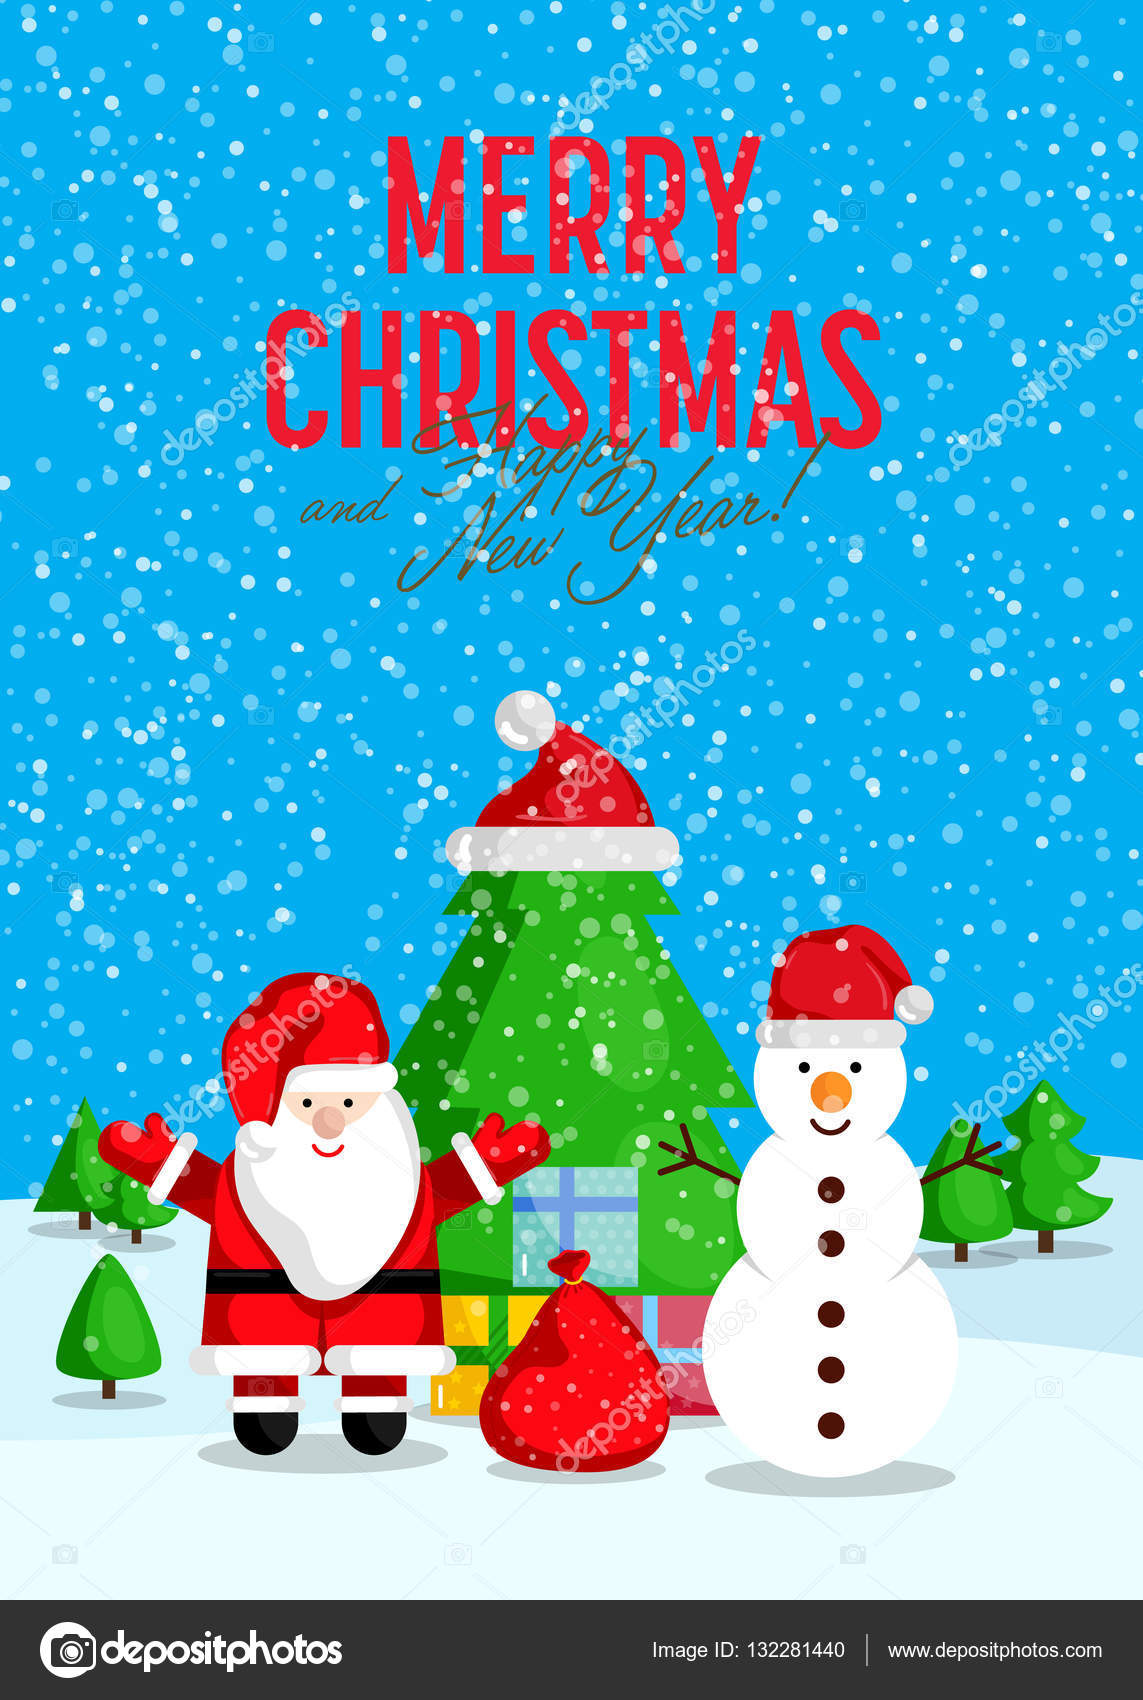 Merry christmas and happy new year greeting card stock vector santa with sack of gifts and snowman with presents near christmas tree during snowfall vector merry christmas and happy new year greeting card m4hsunfo